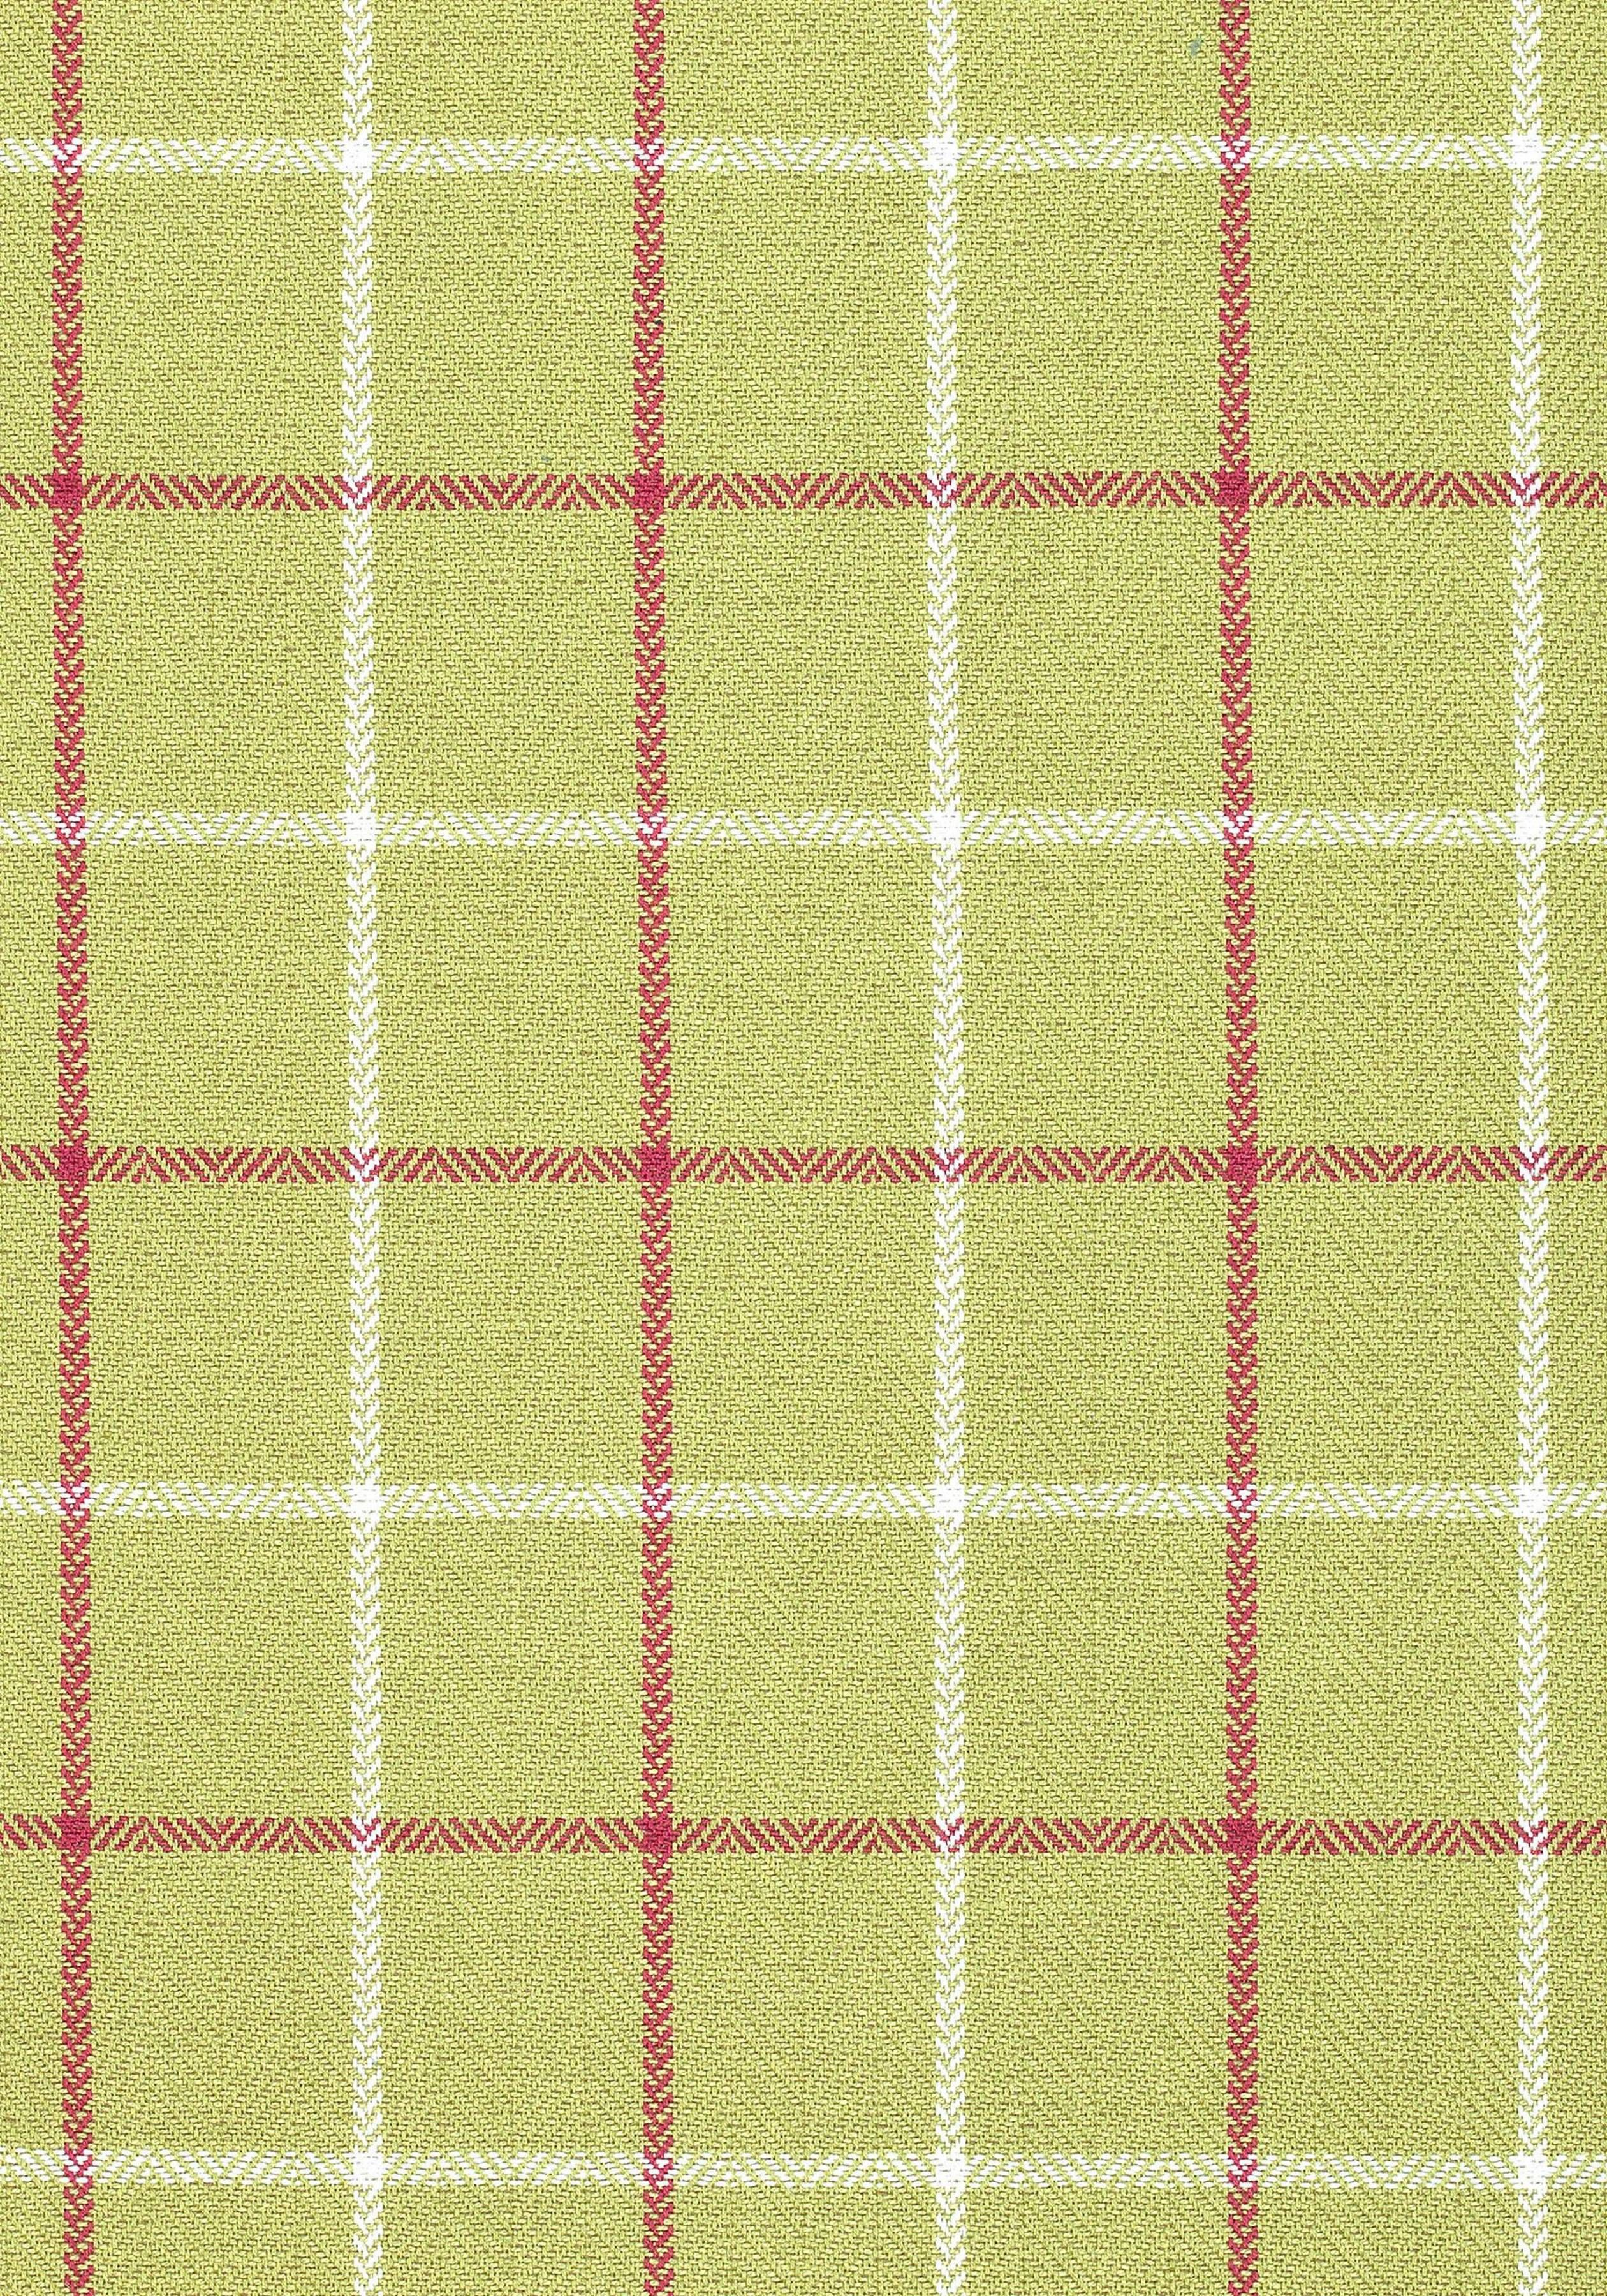 Plaid Lin Aw7872 Pattern Laurence Plaid Woven Fabrics Collection Rue De